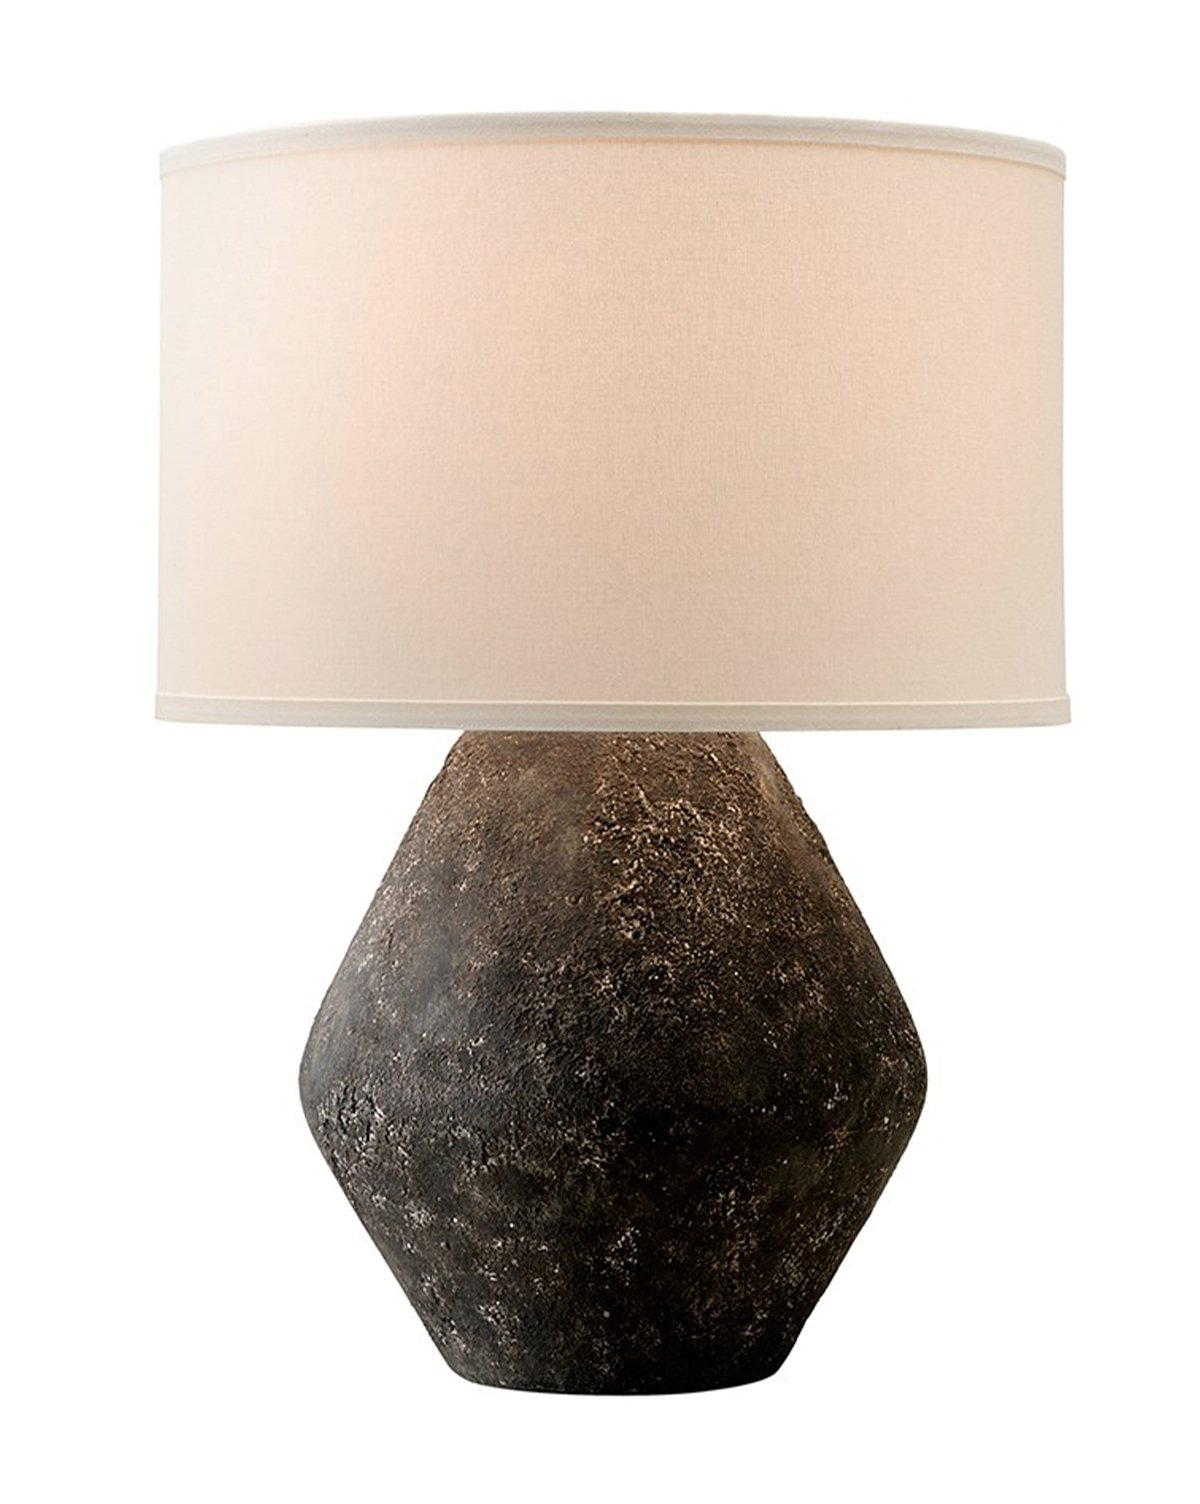 Rayan_Table_Lamp1.jpg